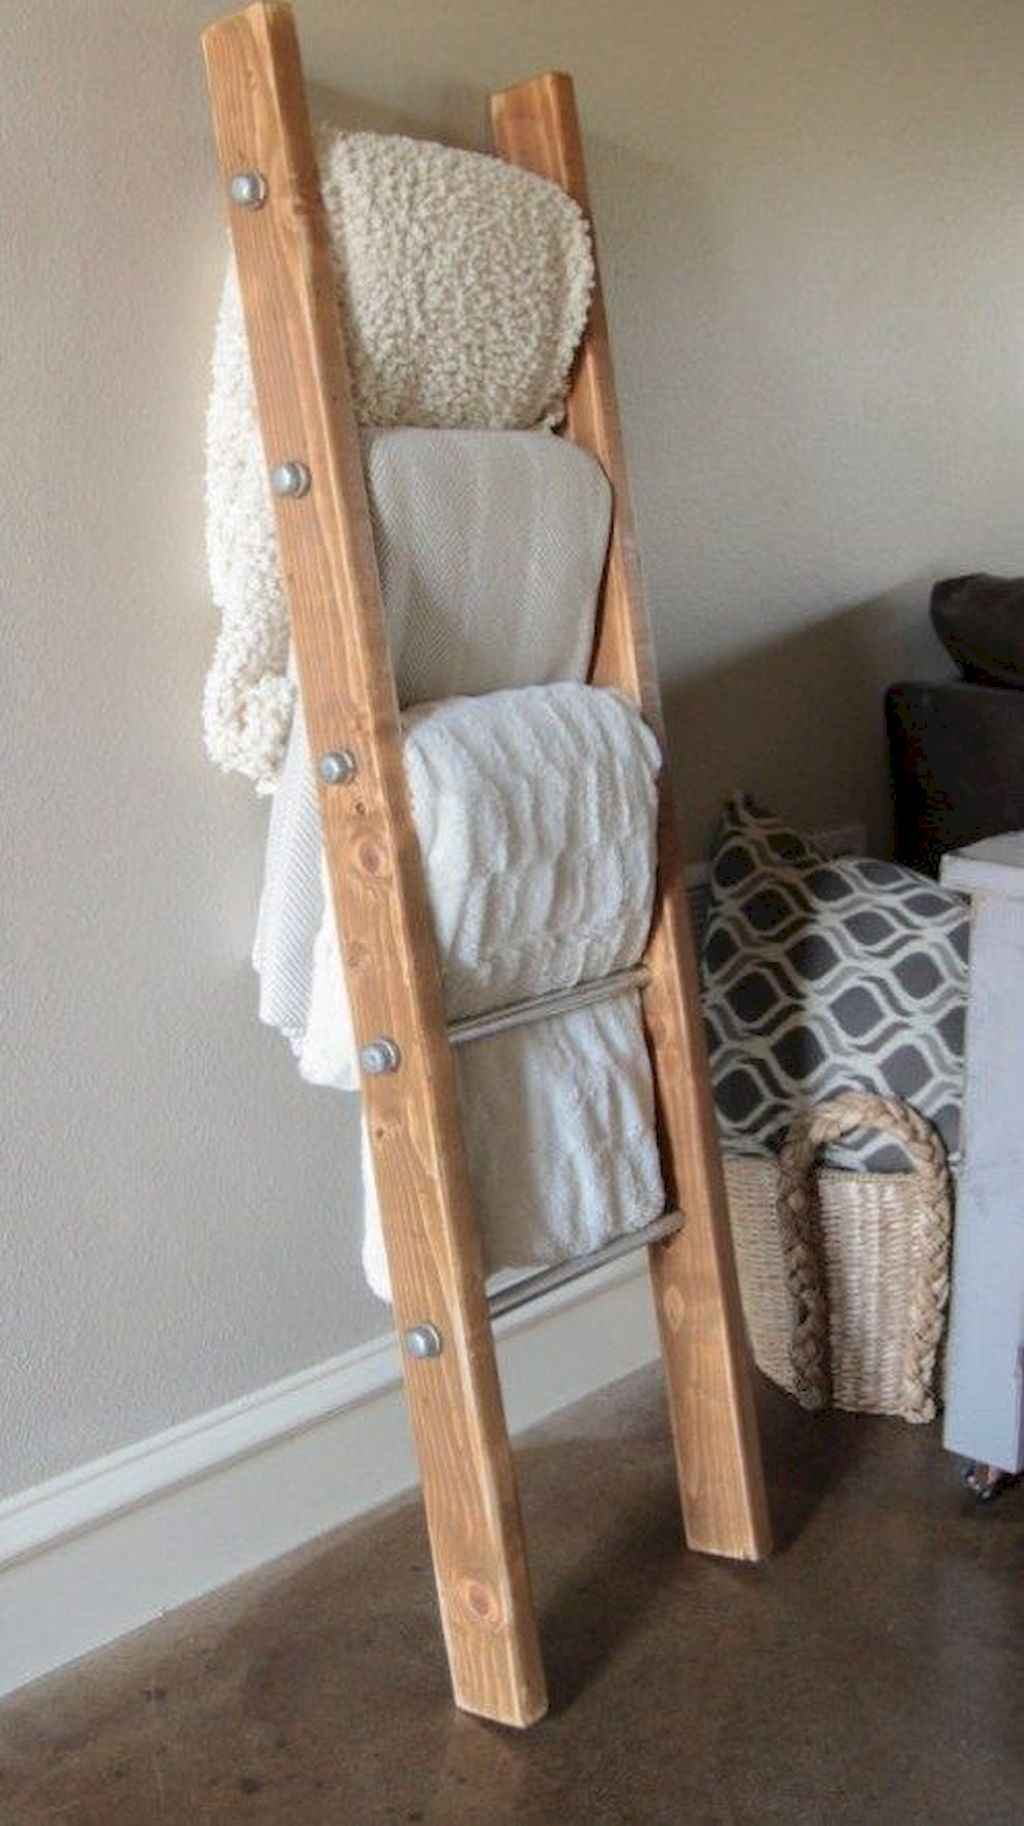 Couples first apartment decorating ideas (109)